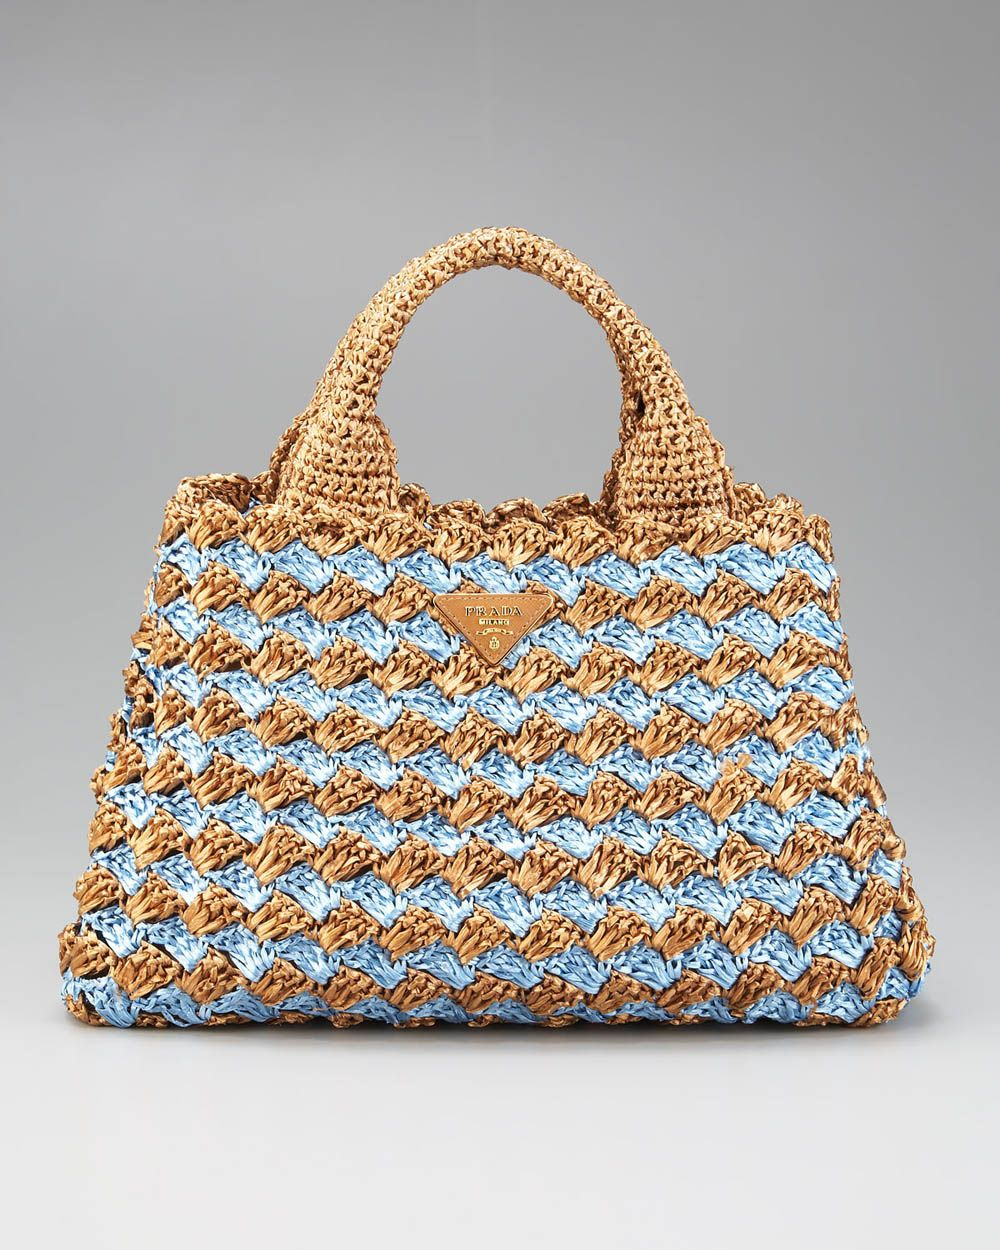 74e5771b6df1 Prada Bi-Color Crocheted Raffia Tote. Basketweave stitch. | DIY Bags ...